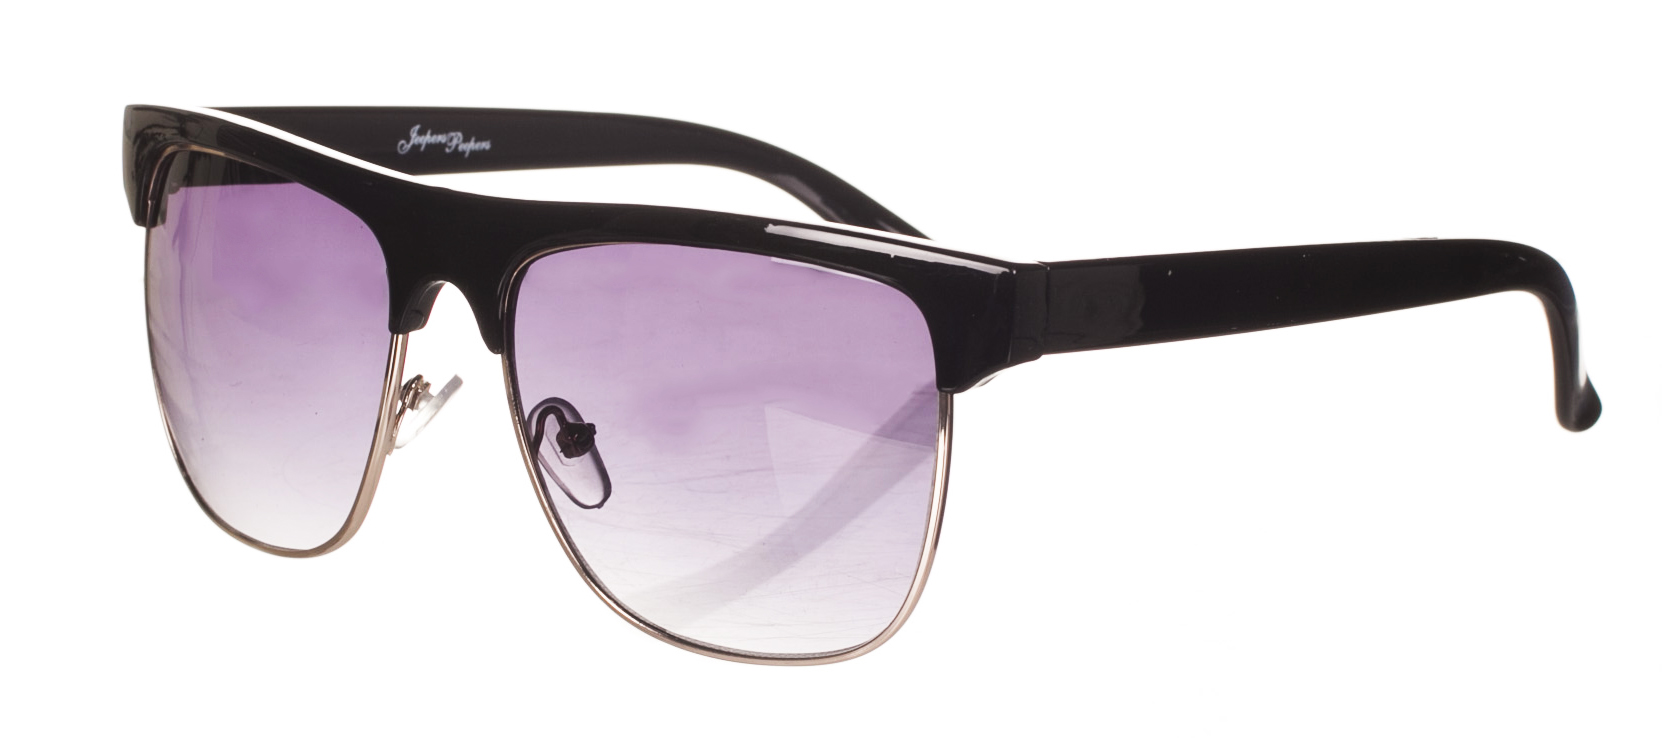 Black Solid Half Frame Wayfarer Sunglasses from Jeepers Peepers £12.99